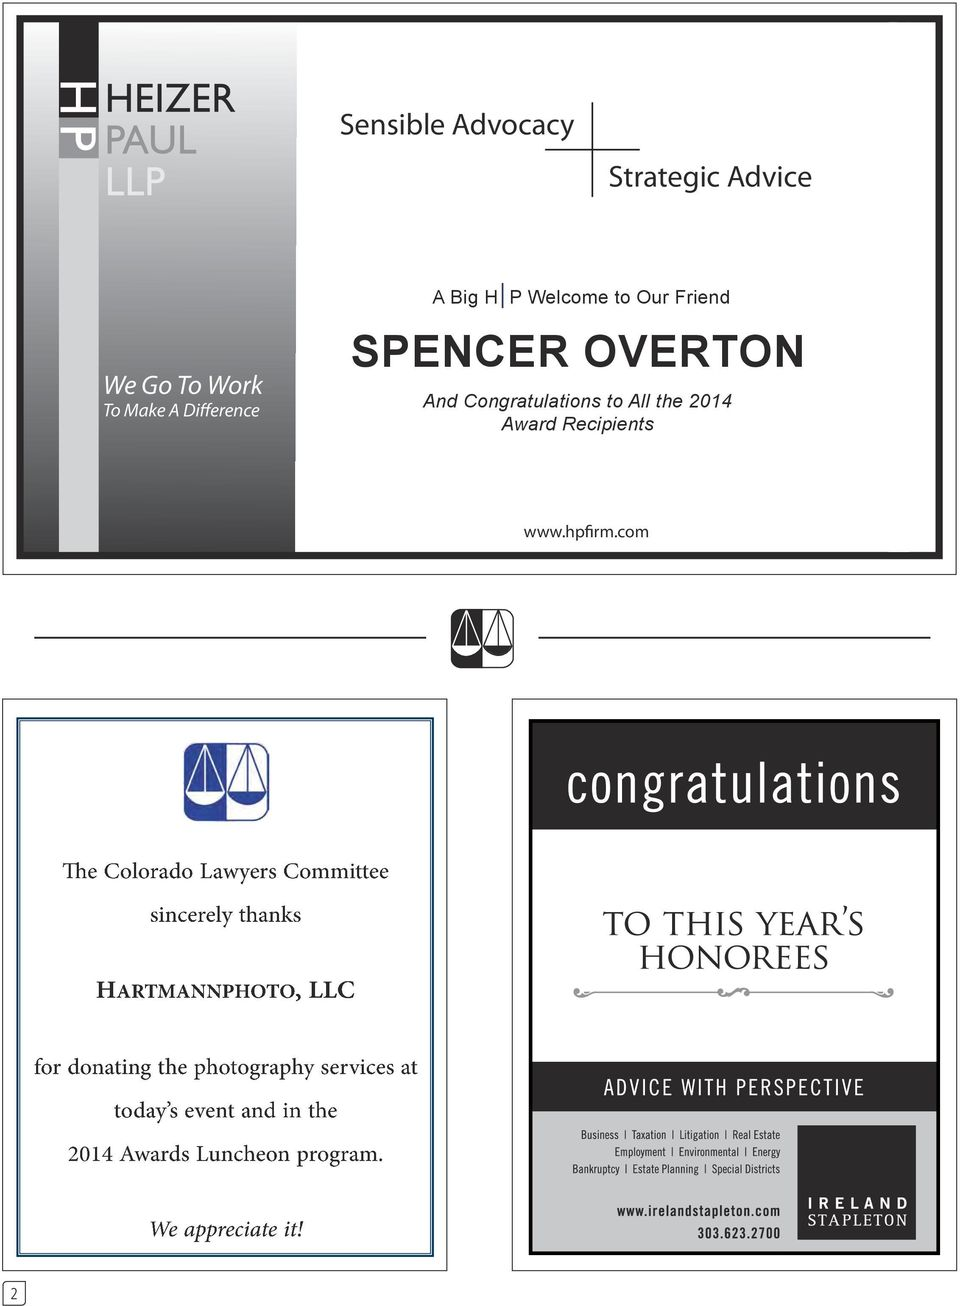 Our Friend SPENCER OVERTON And Congratulations